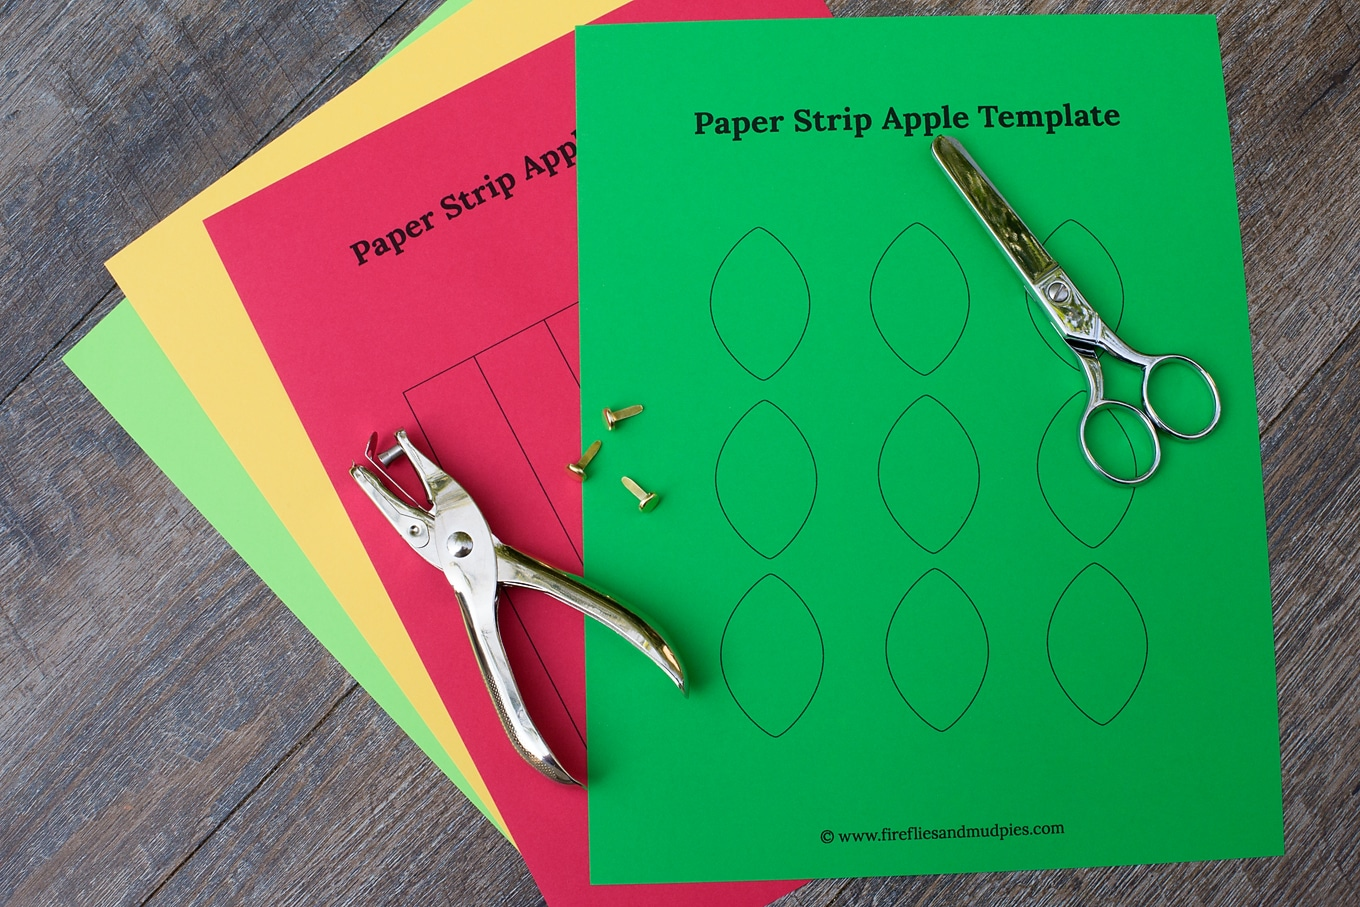 Materials to Make a Paper Apple Craft